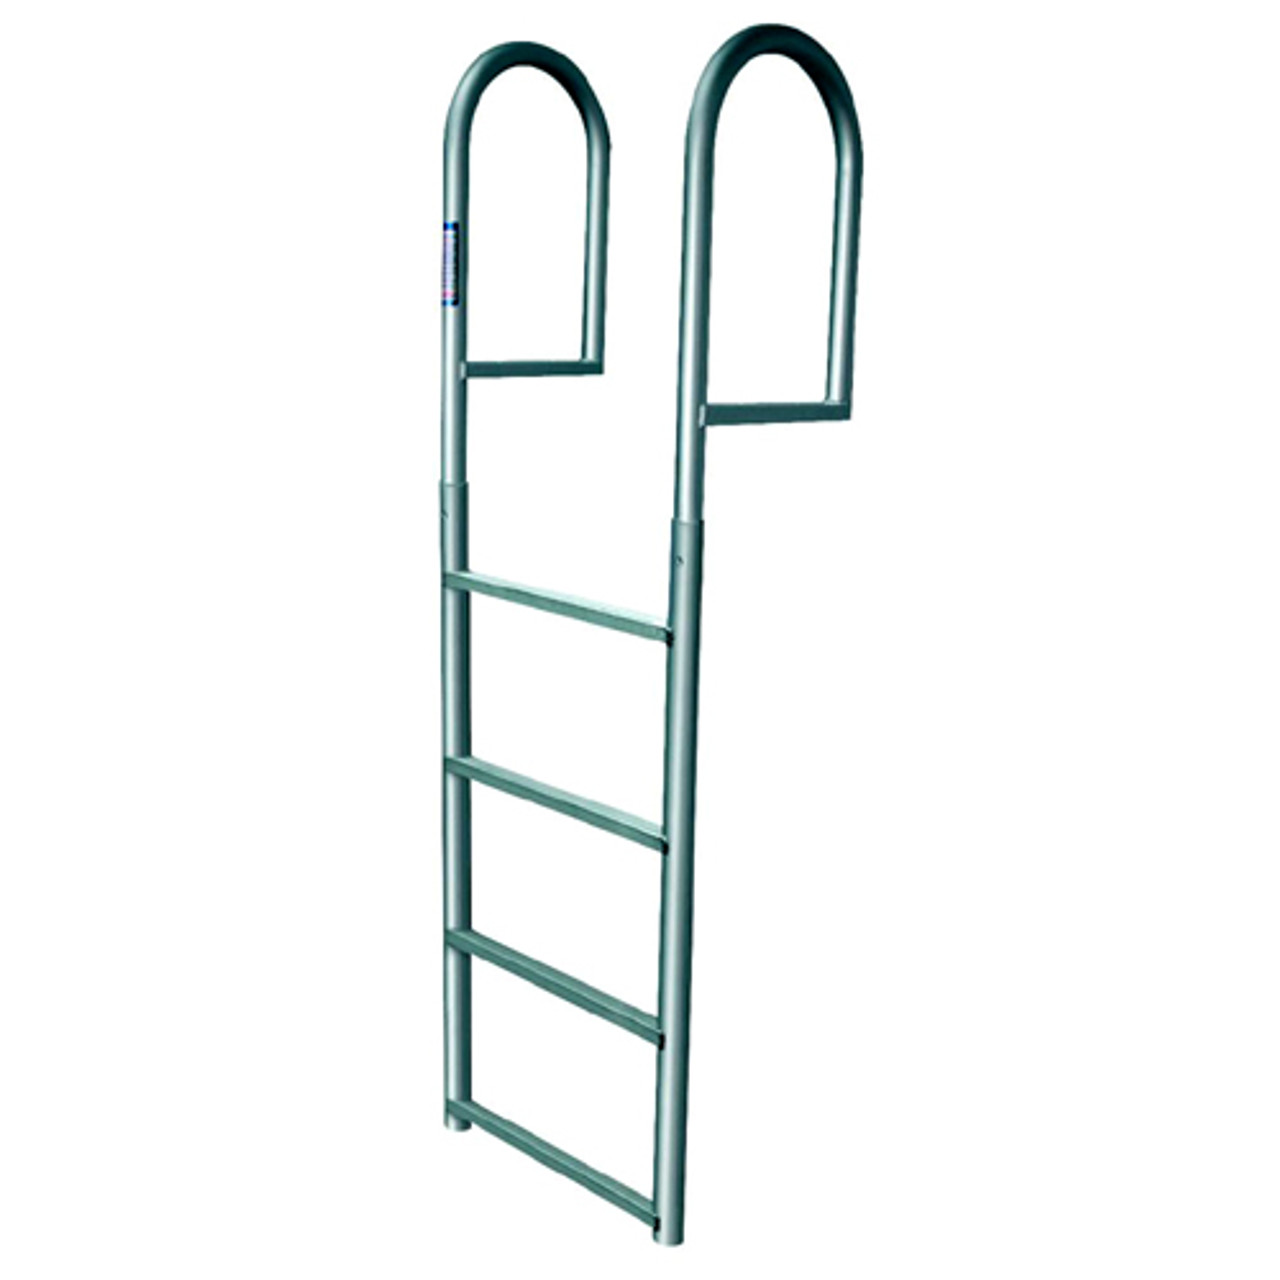 Jif Err4 Aluminum Folding Ladder W// Mount Hardware 4 Steps